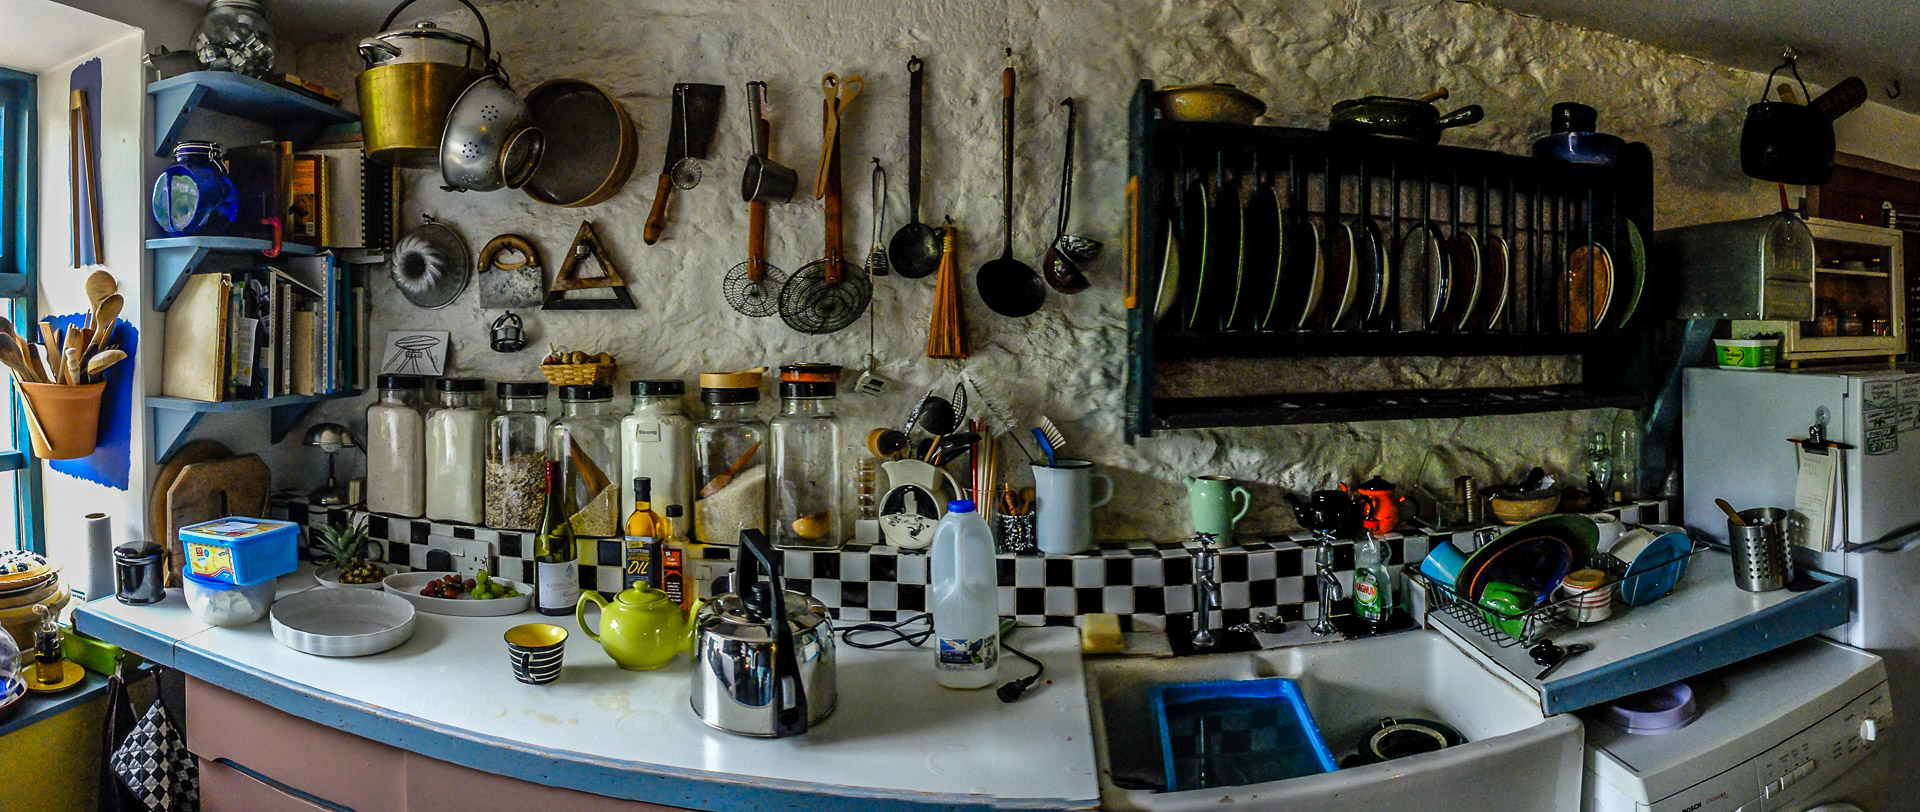 A swept panorama of Charlie and Pauline's kitchen at Allanton